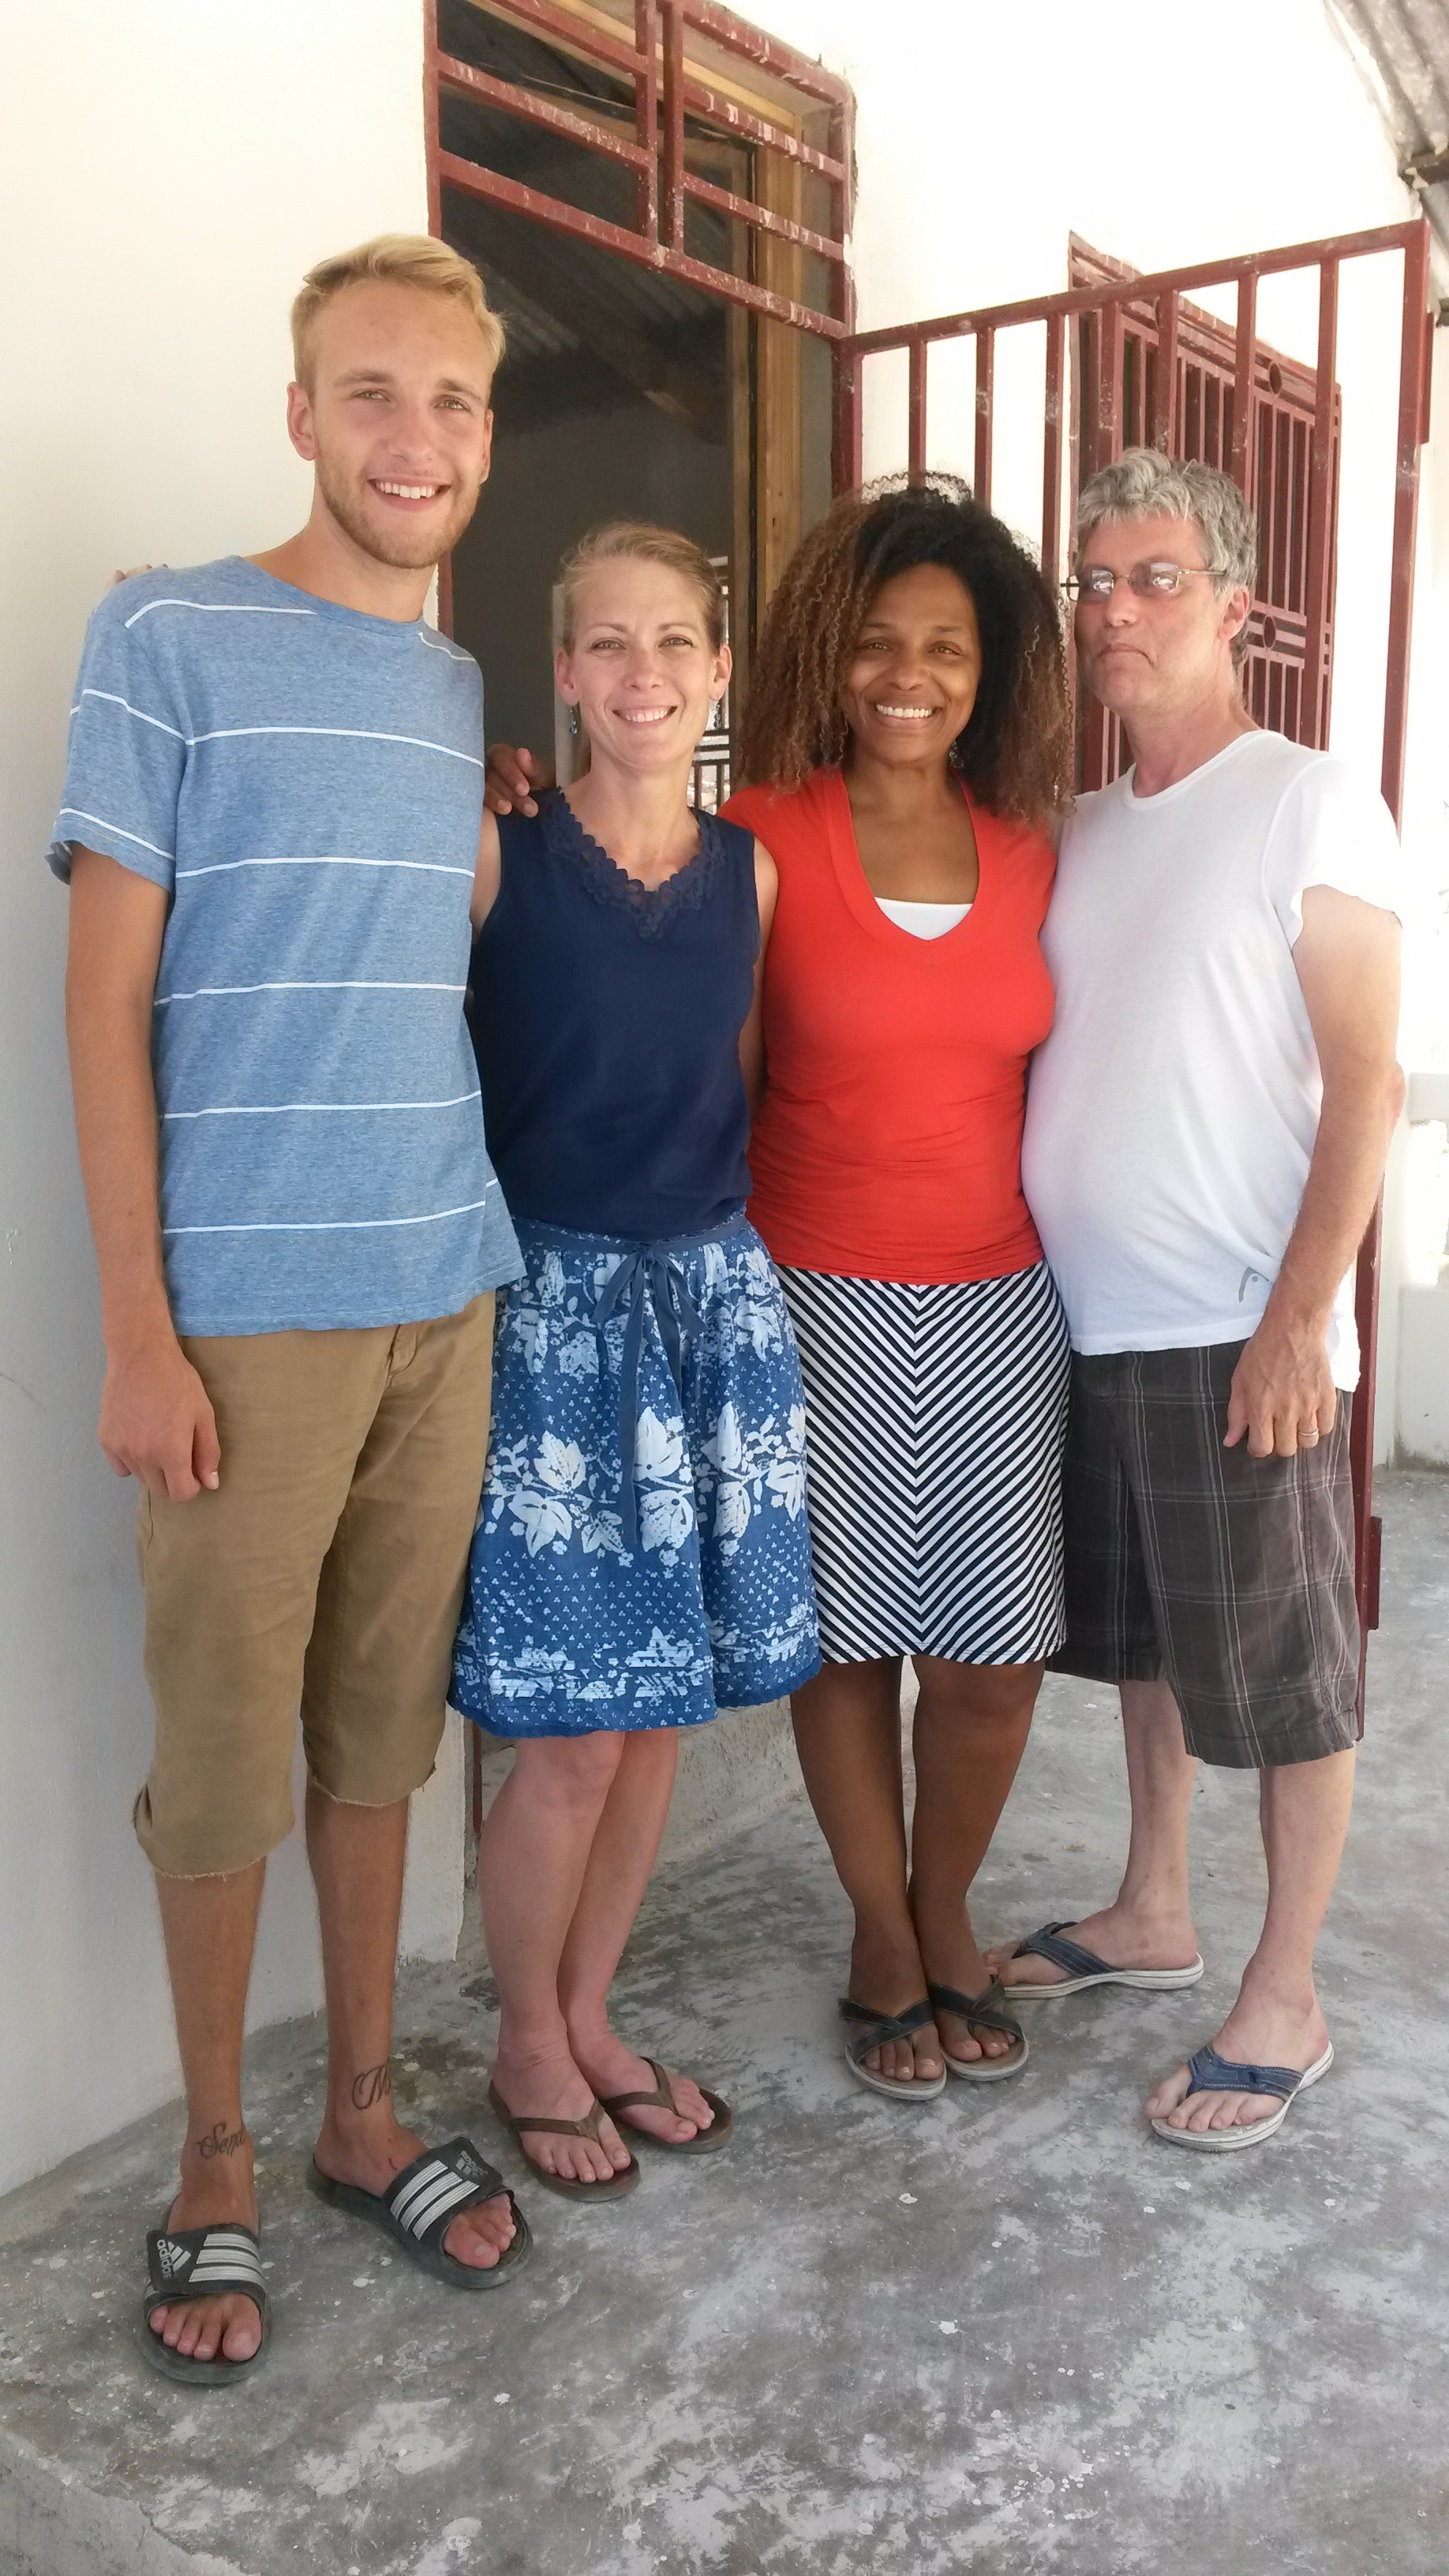 In June of 2014 Tyler and I got the opportunity to visit Gloria and her husband at their home in Haiti. What a blessing that was! Gloria has helped me in so many ways in understanding and loving Haiti better.